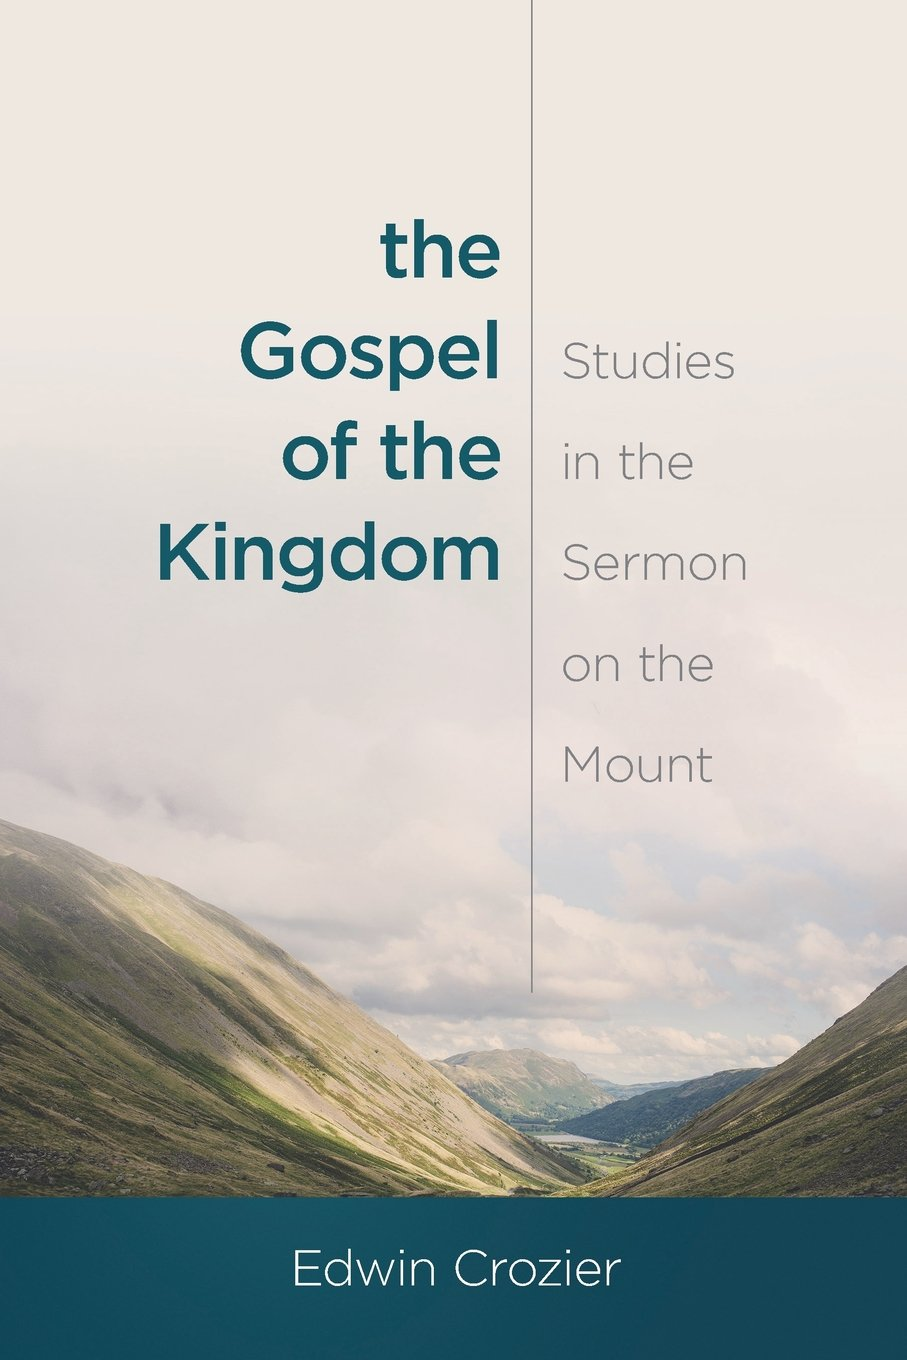 Download The Gospel of the Kingdom: Studies in the Sermon on the Mount PDF